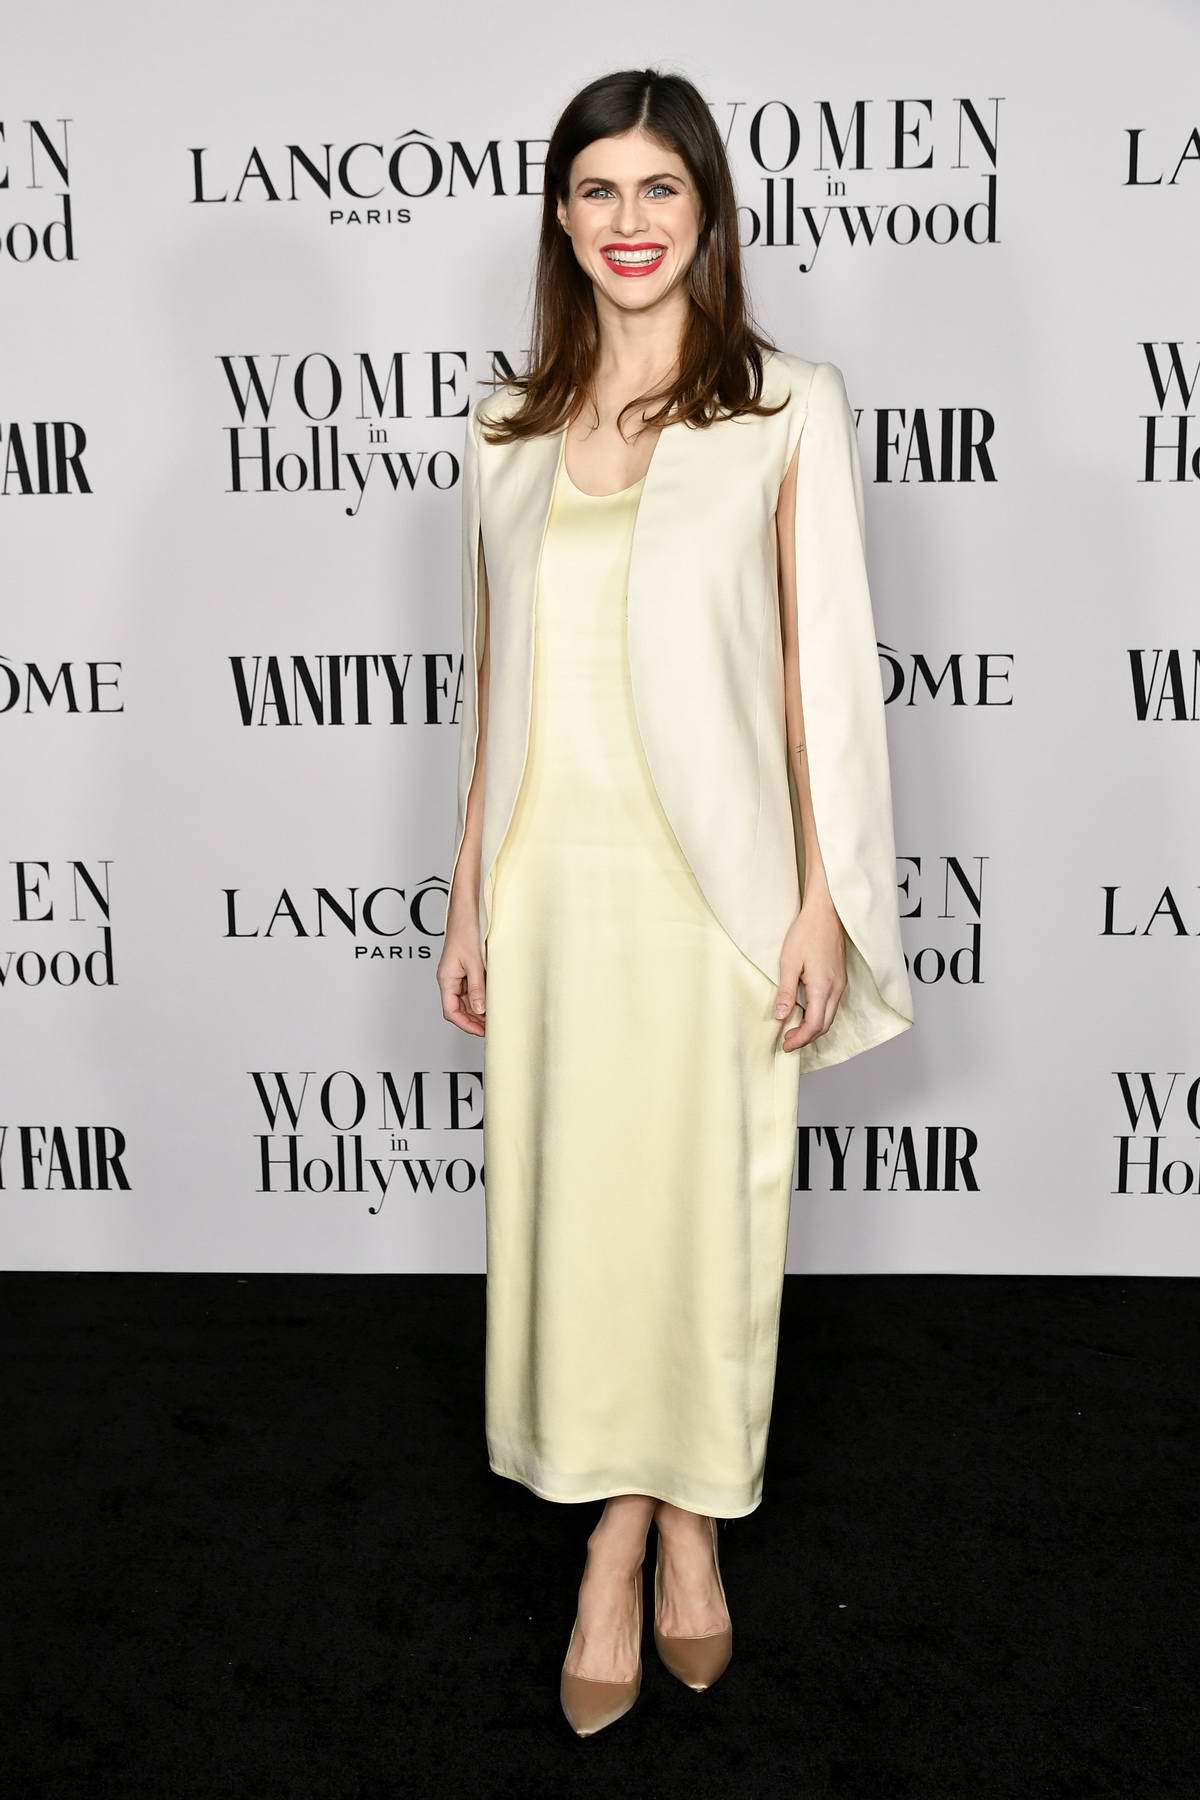 Alexandra Daddario attends the Vanity Fair and Lancome Women in Hollywood Celebration in West Hollywood, California